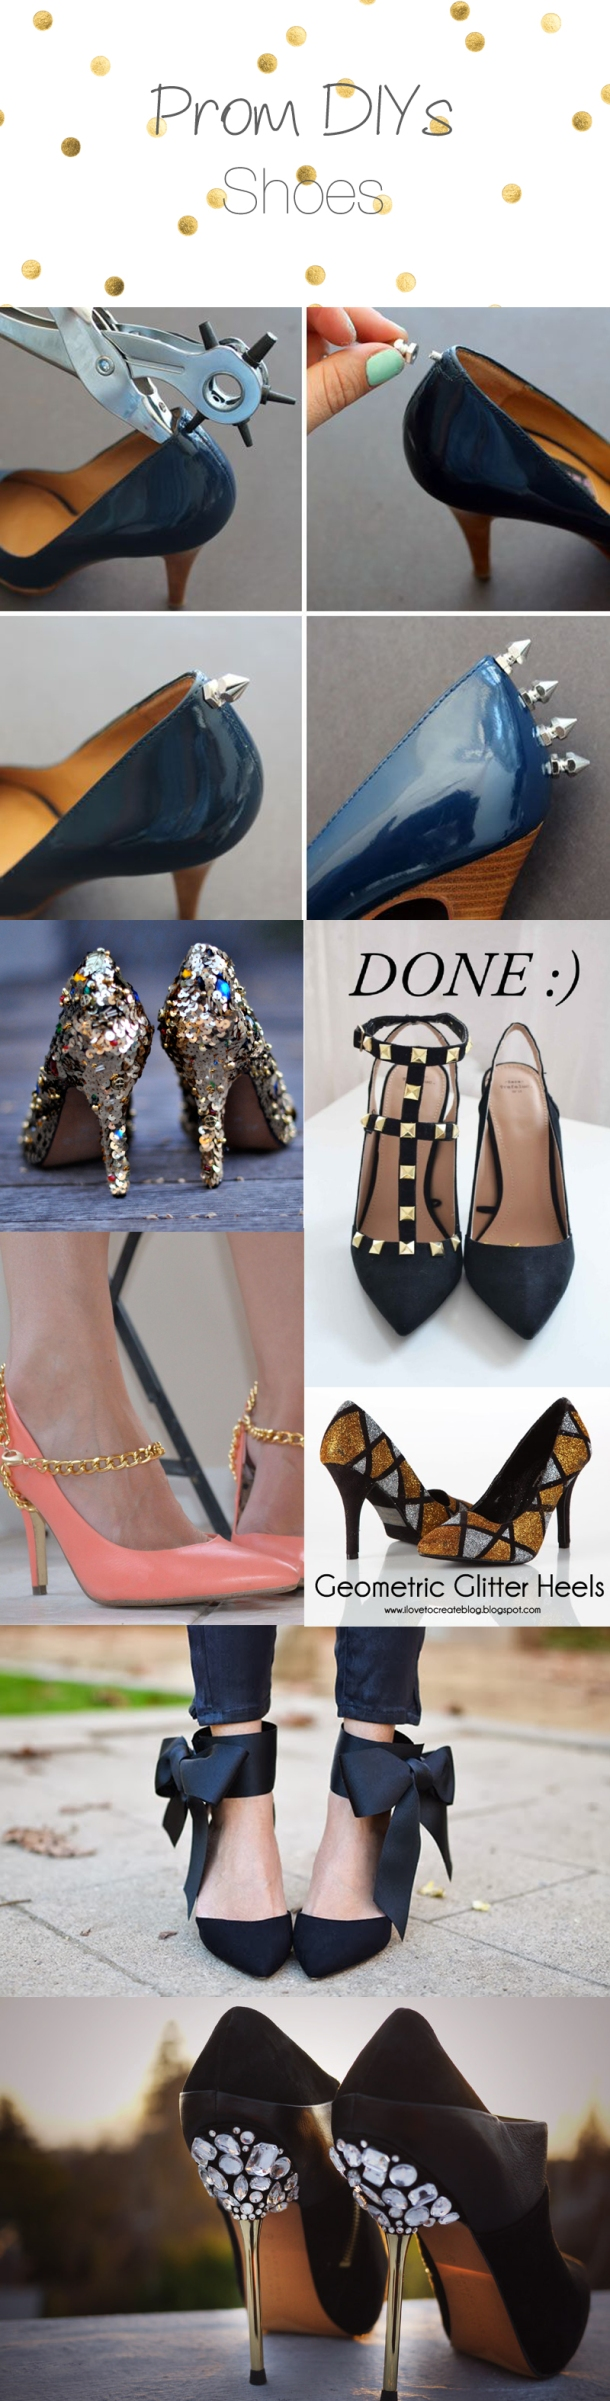 diy-prom-shoes